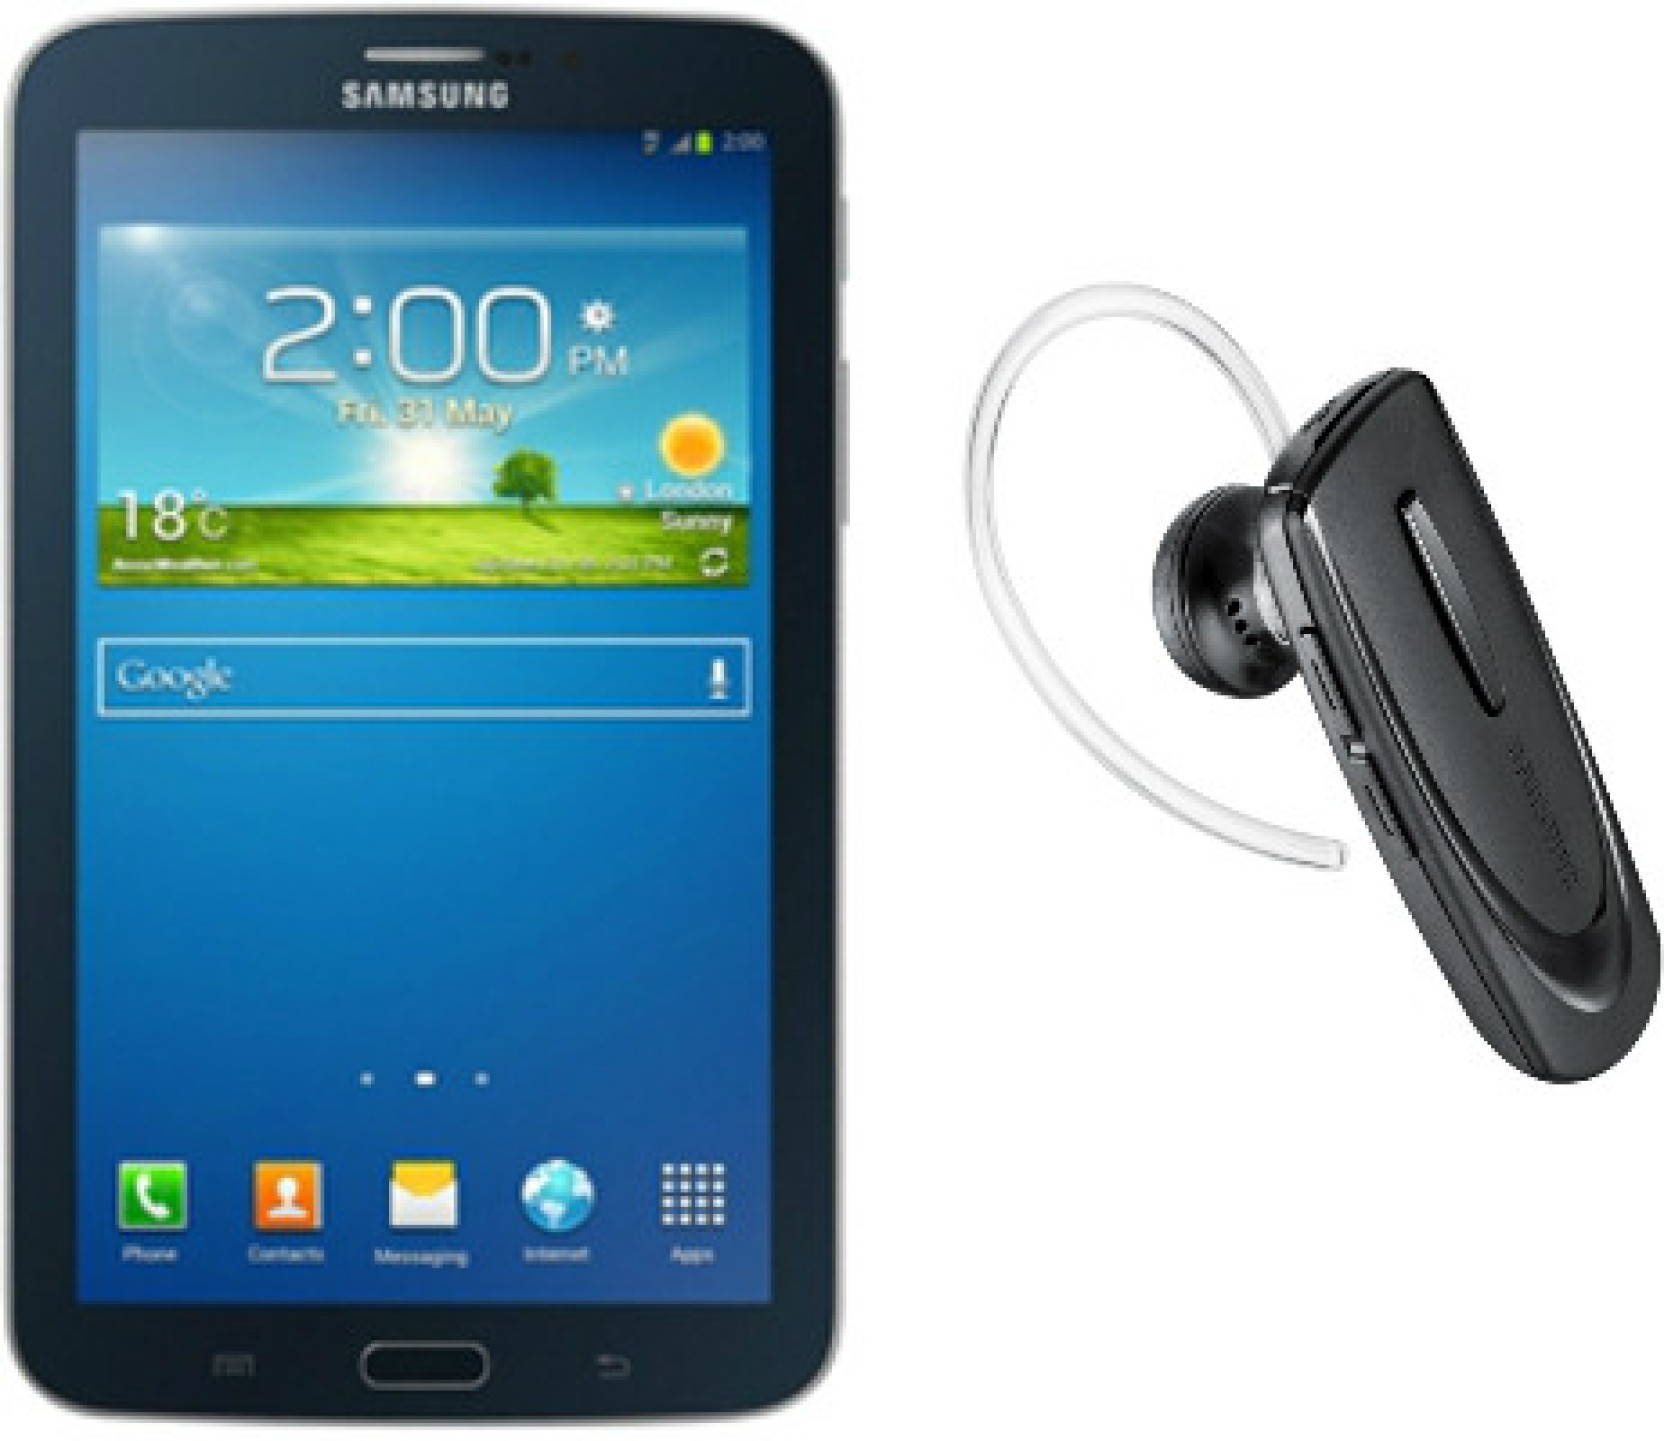 Prices of The Tablet Galaxy Tab 3 of Samsung in Spain